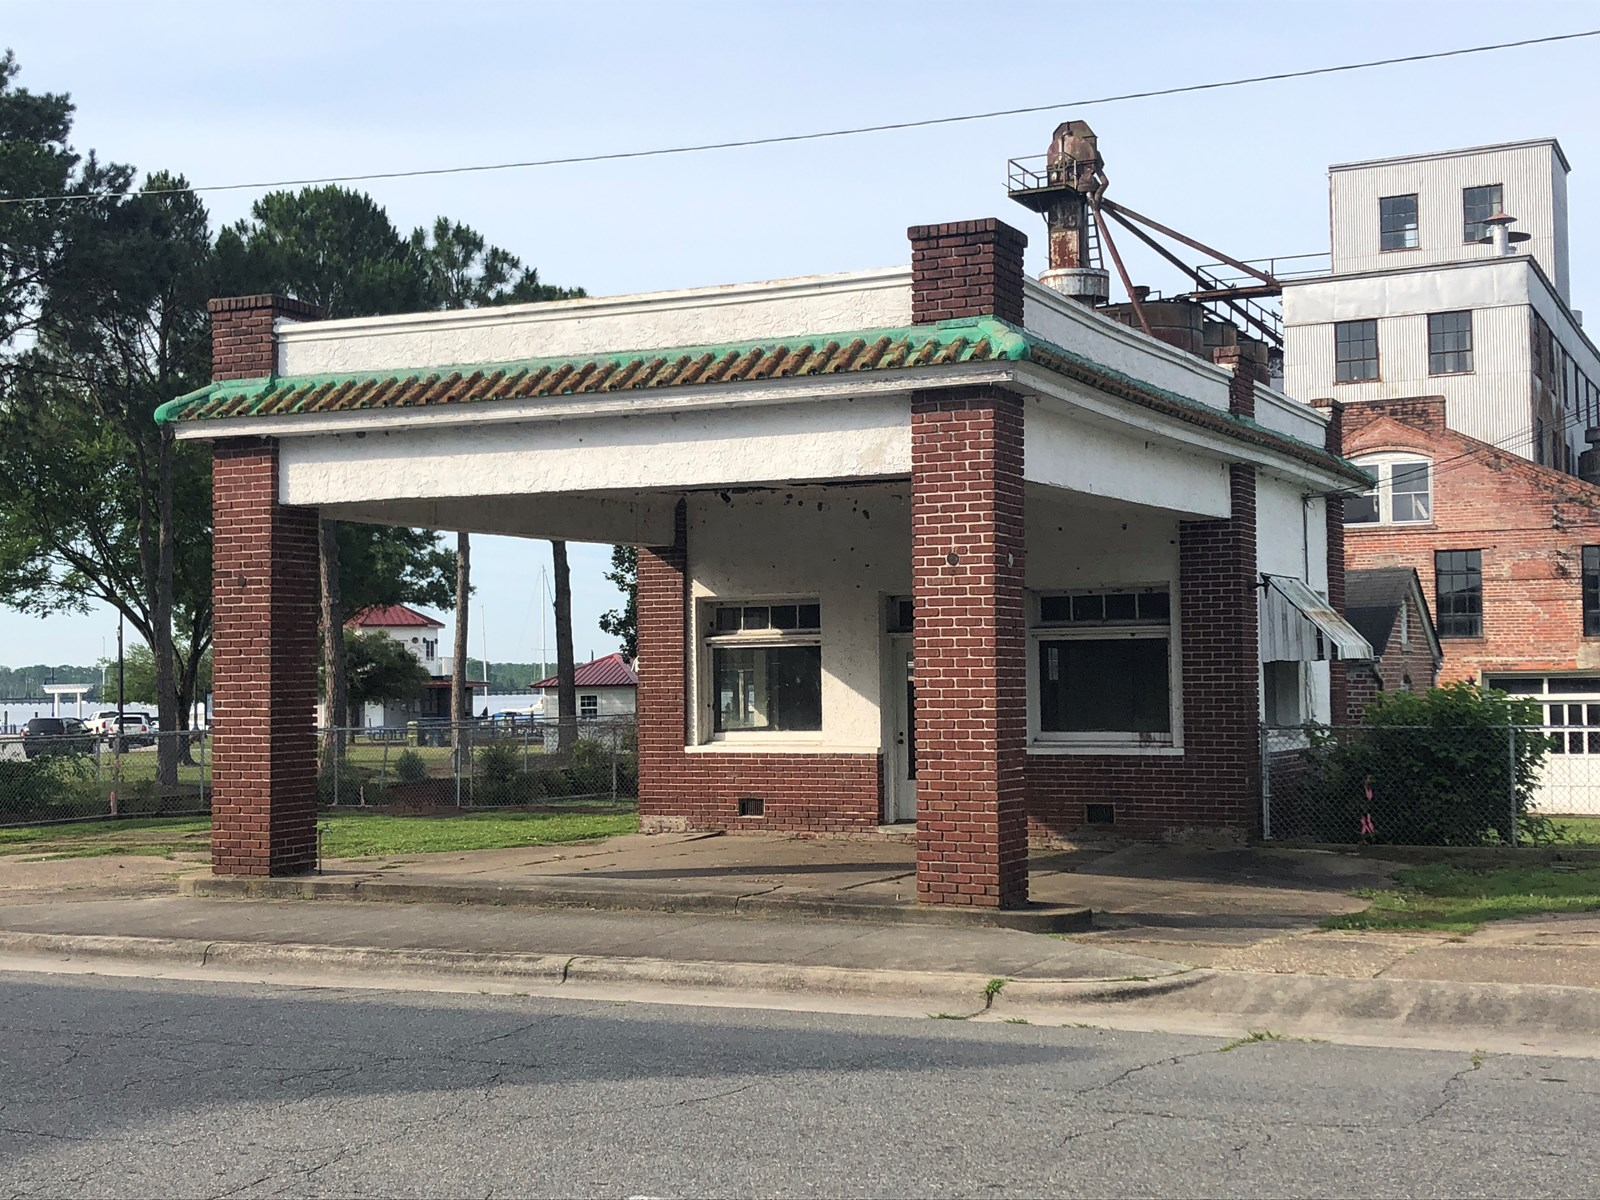 Waterfront Commercial Property For Sale Washington, NC